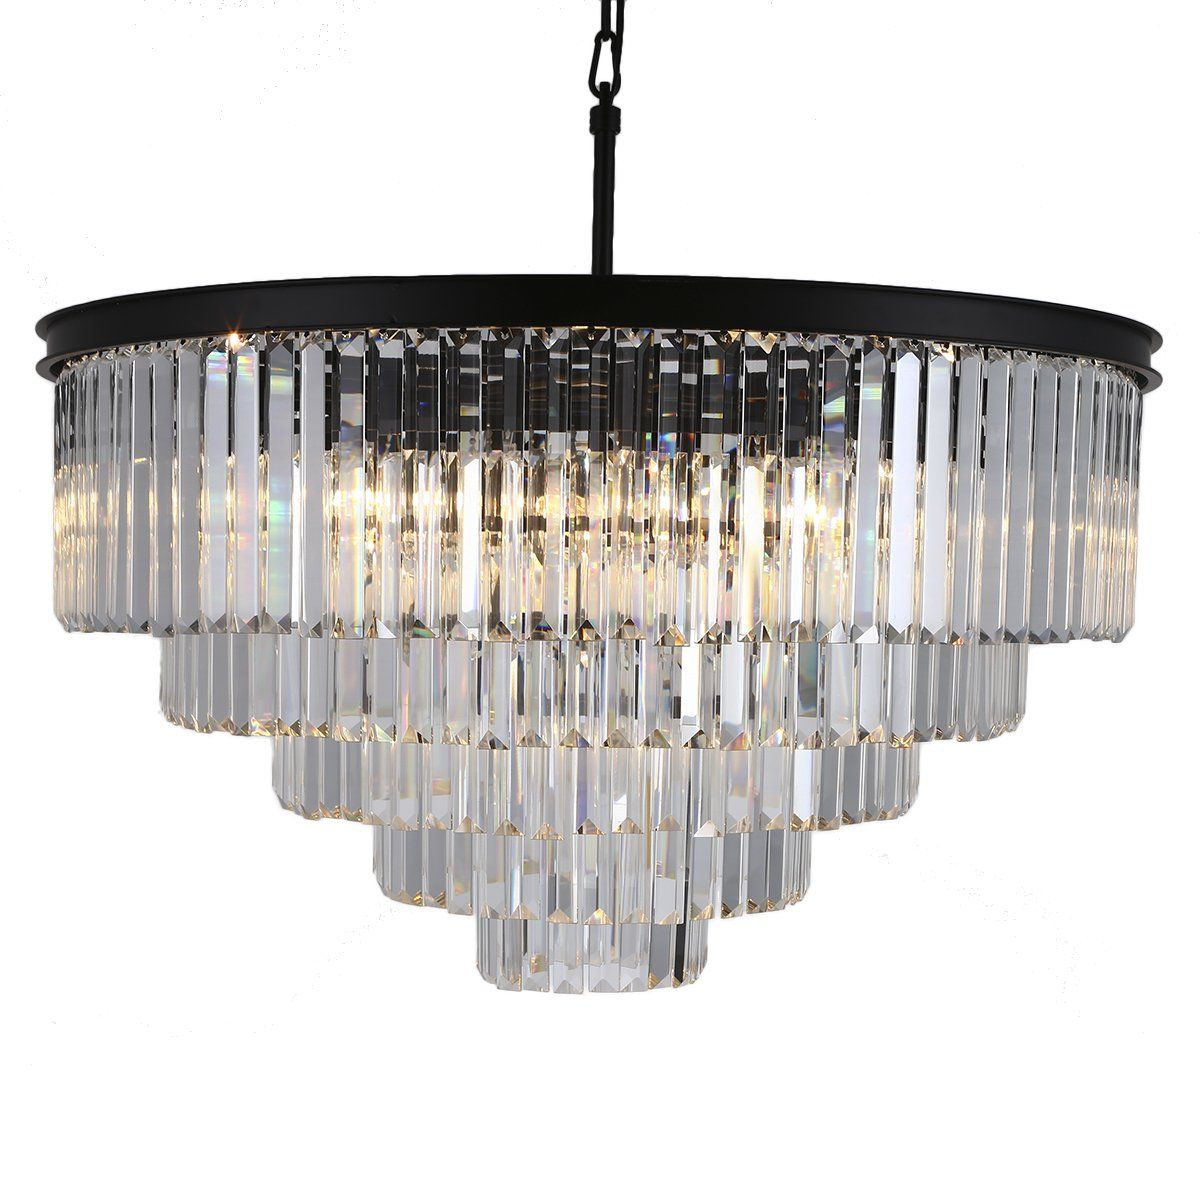 Odeon Crystal Chandelier 17 Lights Round Pendant Hanging Light